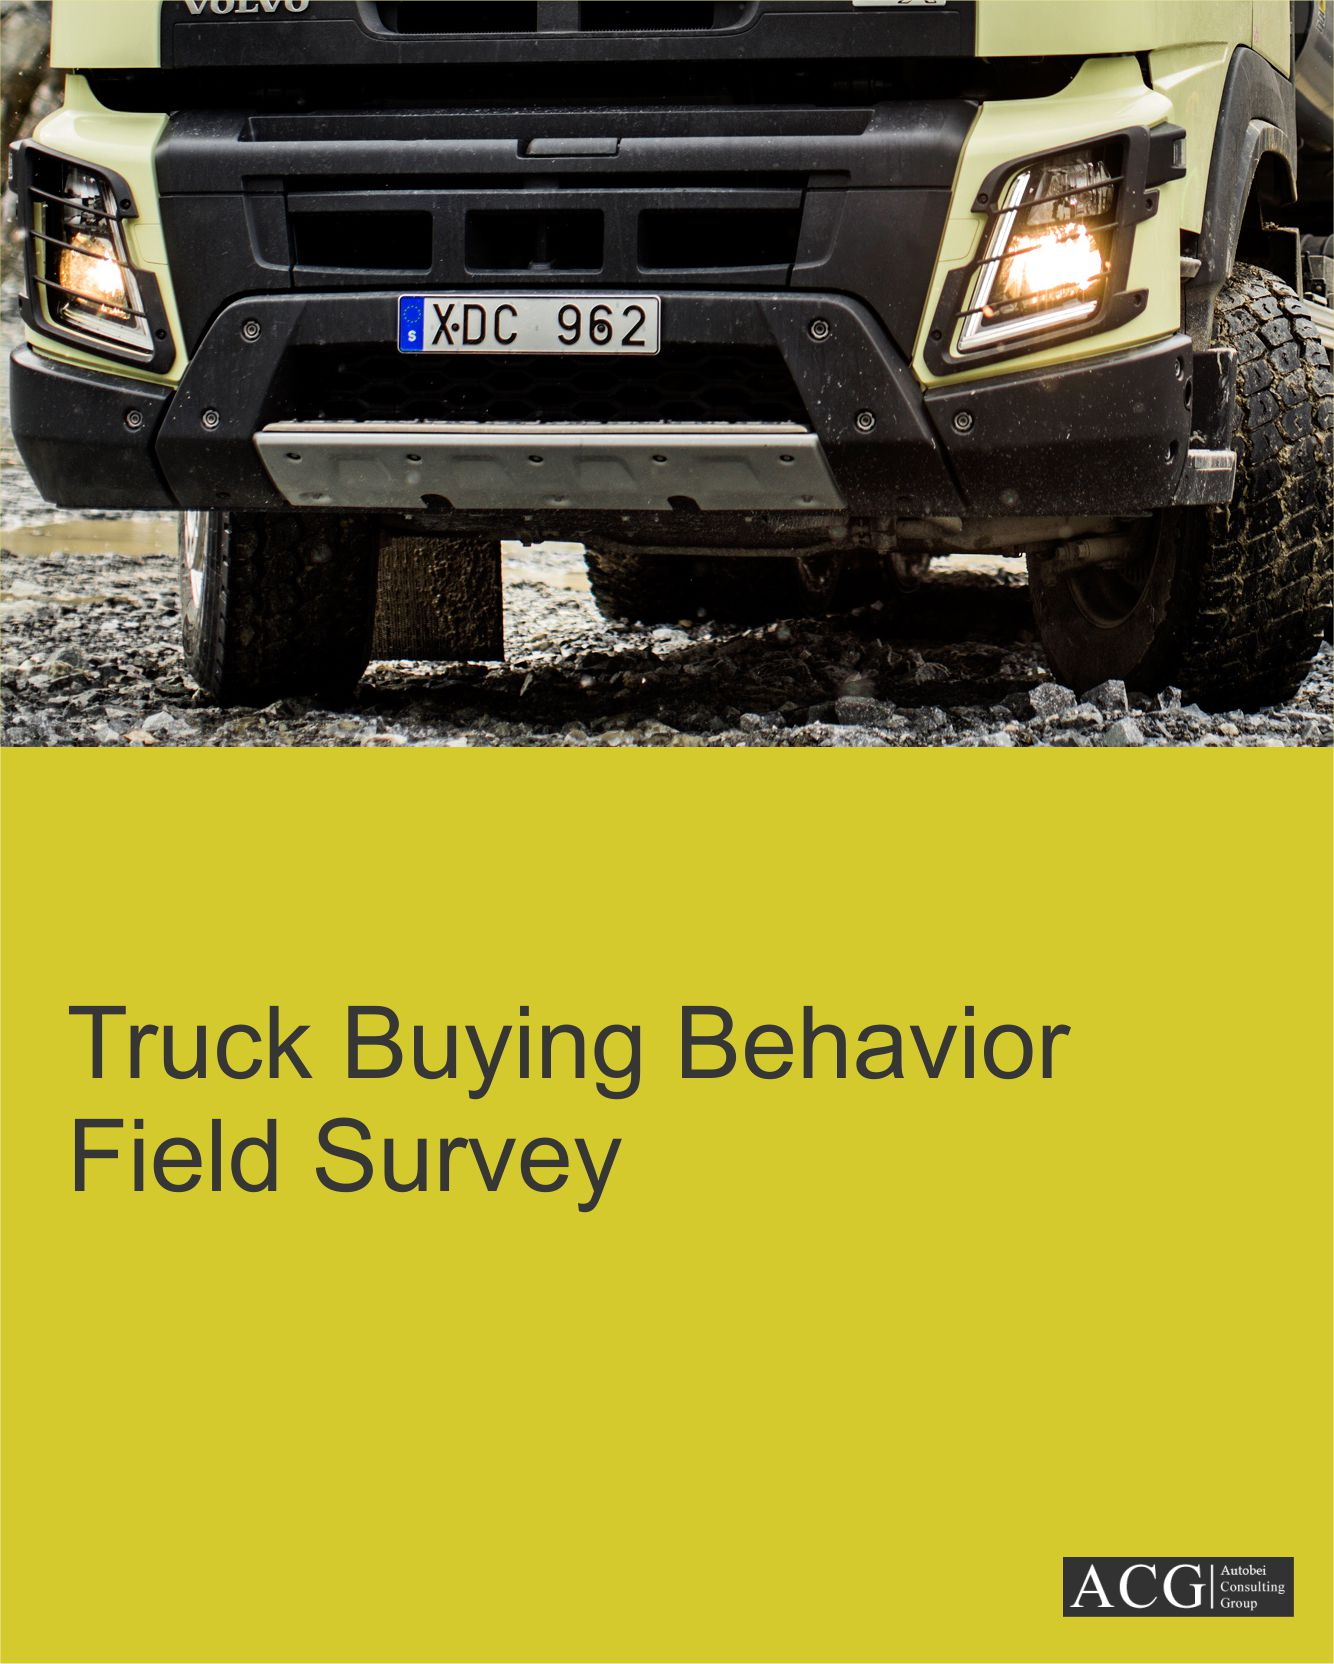 Truck Buying Behavior Field Survey